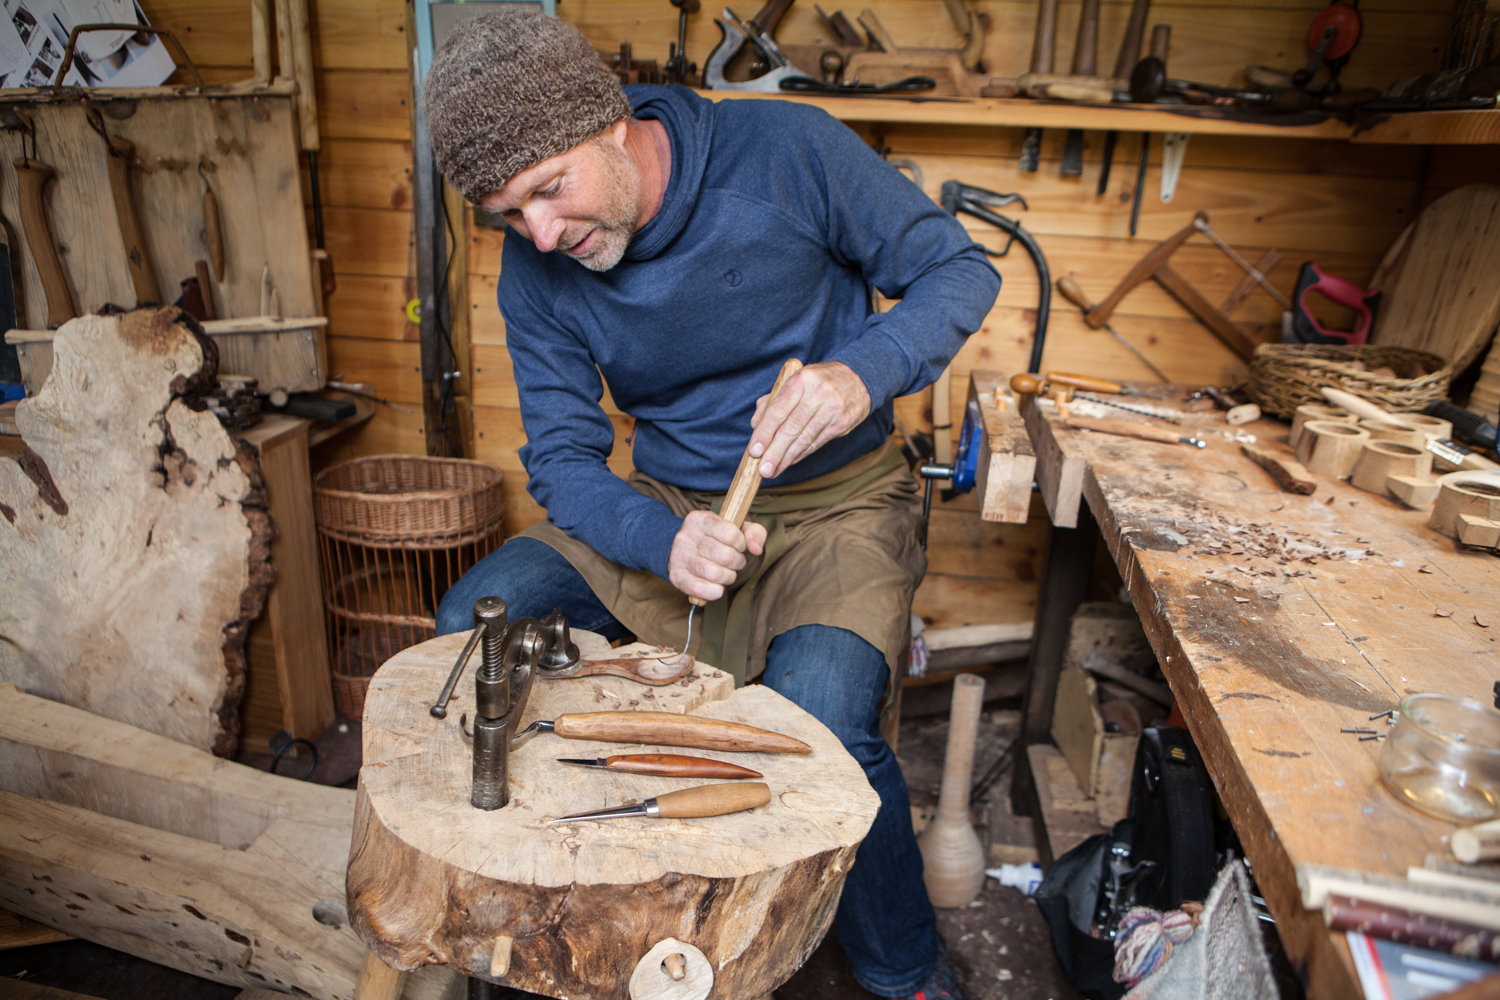 - Brought up in north Wales, David studied visual communication before working in a series of communication agencies as designer. Starting a family took him back to rural Wales where he was able to diversify into artisan food photography and making from wood. The landscape and natural beauty of North Wales is a constant inspiration and indeed all the wood he uses is native to and sourced in North Wales. Taking a green woodworking approach to making in wood allows David a simple process - the use of a few sharp tools only and the ability to make anywhere outdoors. David makes tableware for top restaurants, and sells one-off pieces online.